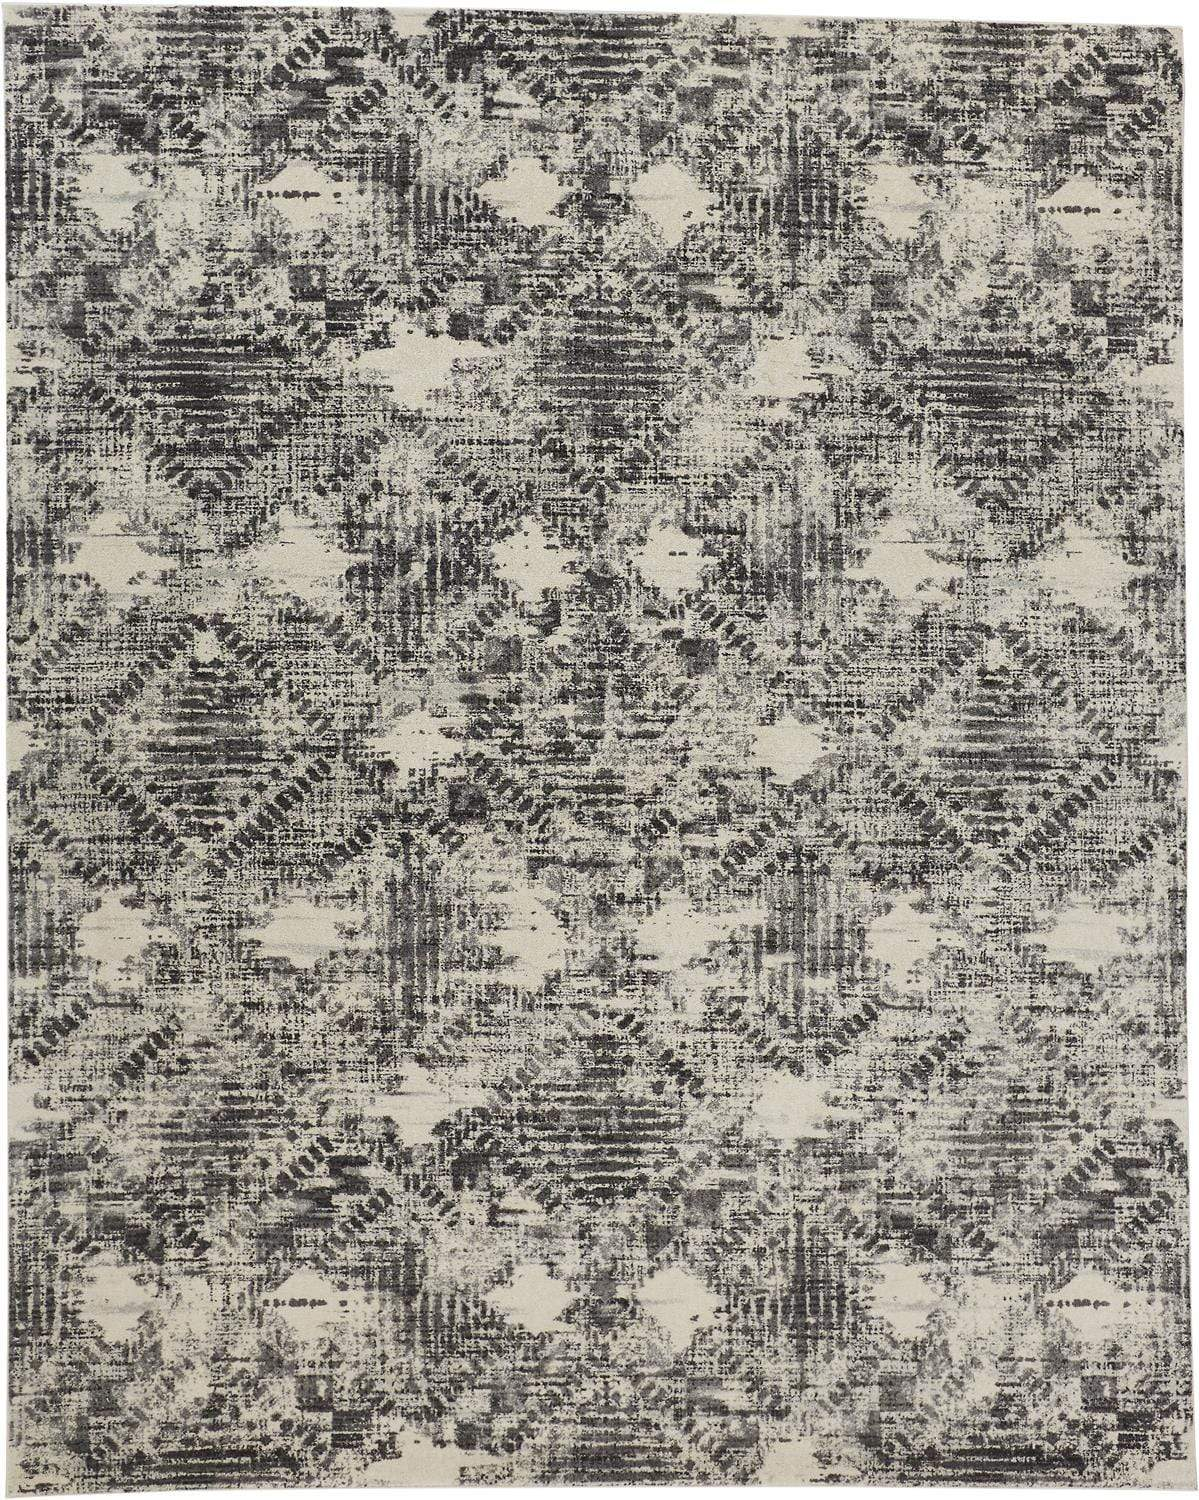 Feizy Feizy Sorel Distressed Abstract Rug - Available in 5 Sizes - Gunmetal Gray & Beige 5' x 8' 6093299FGRYBGEE10